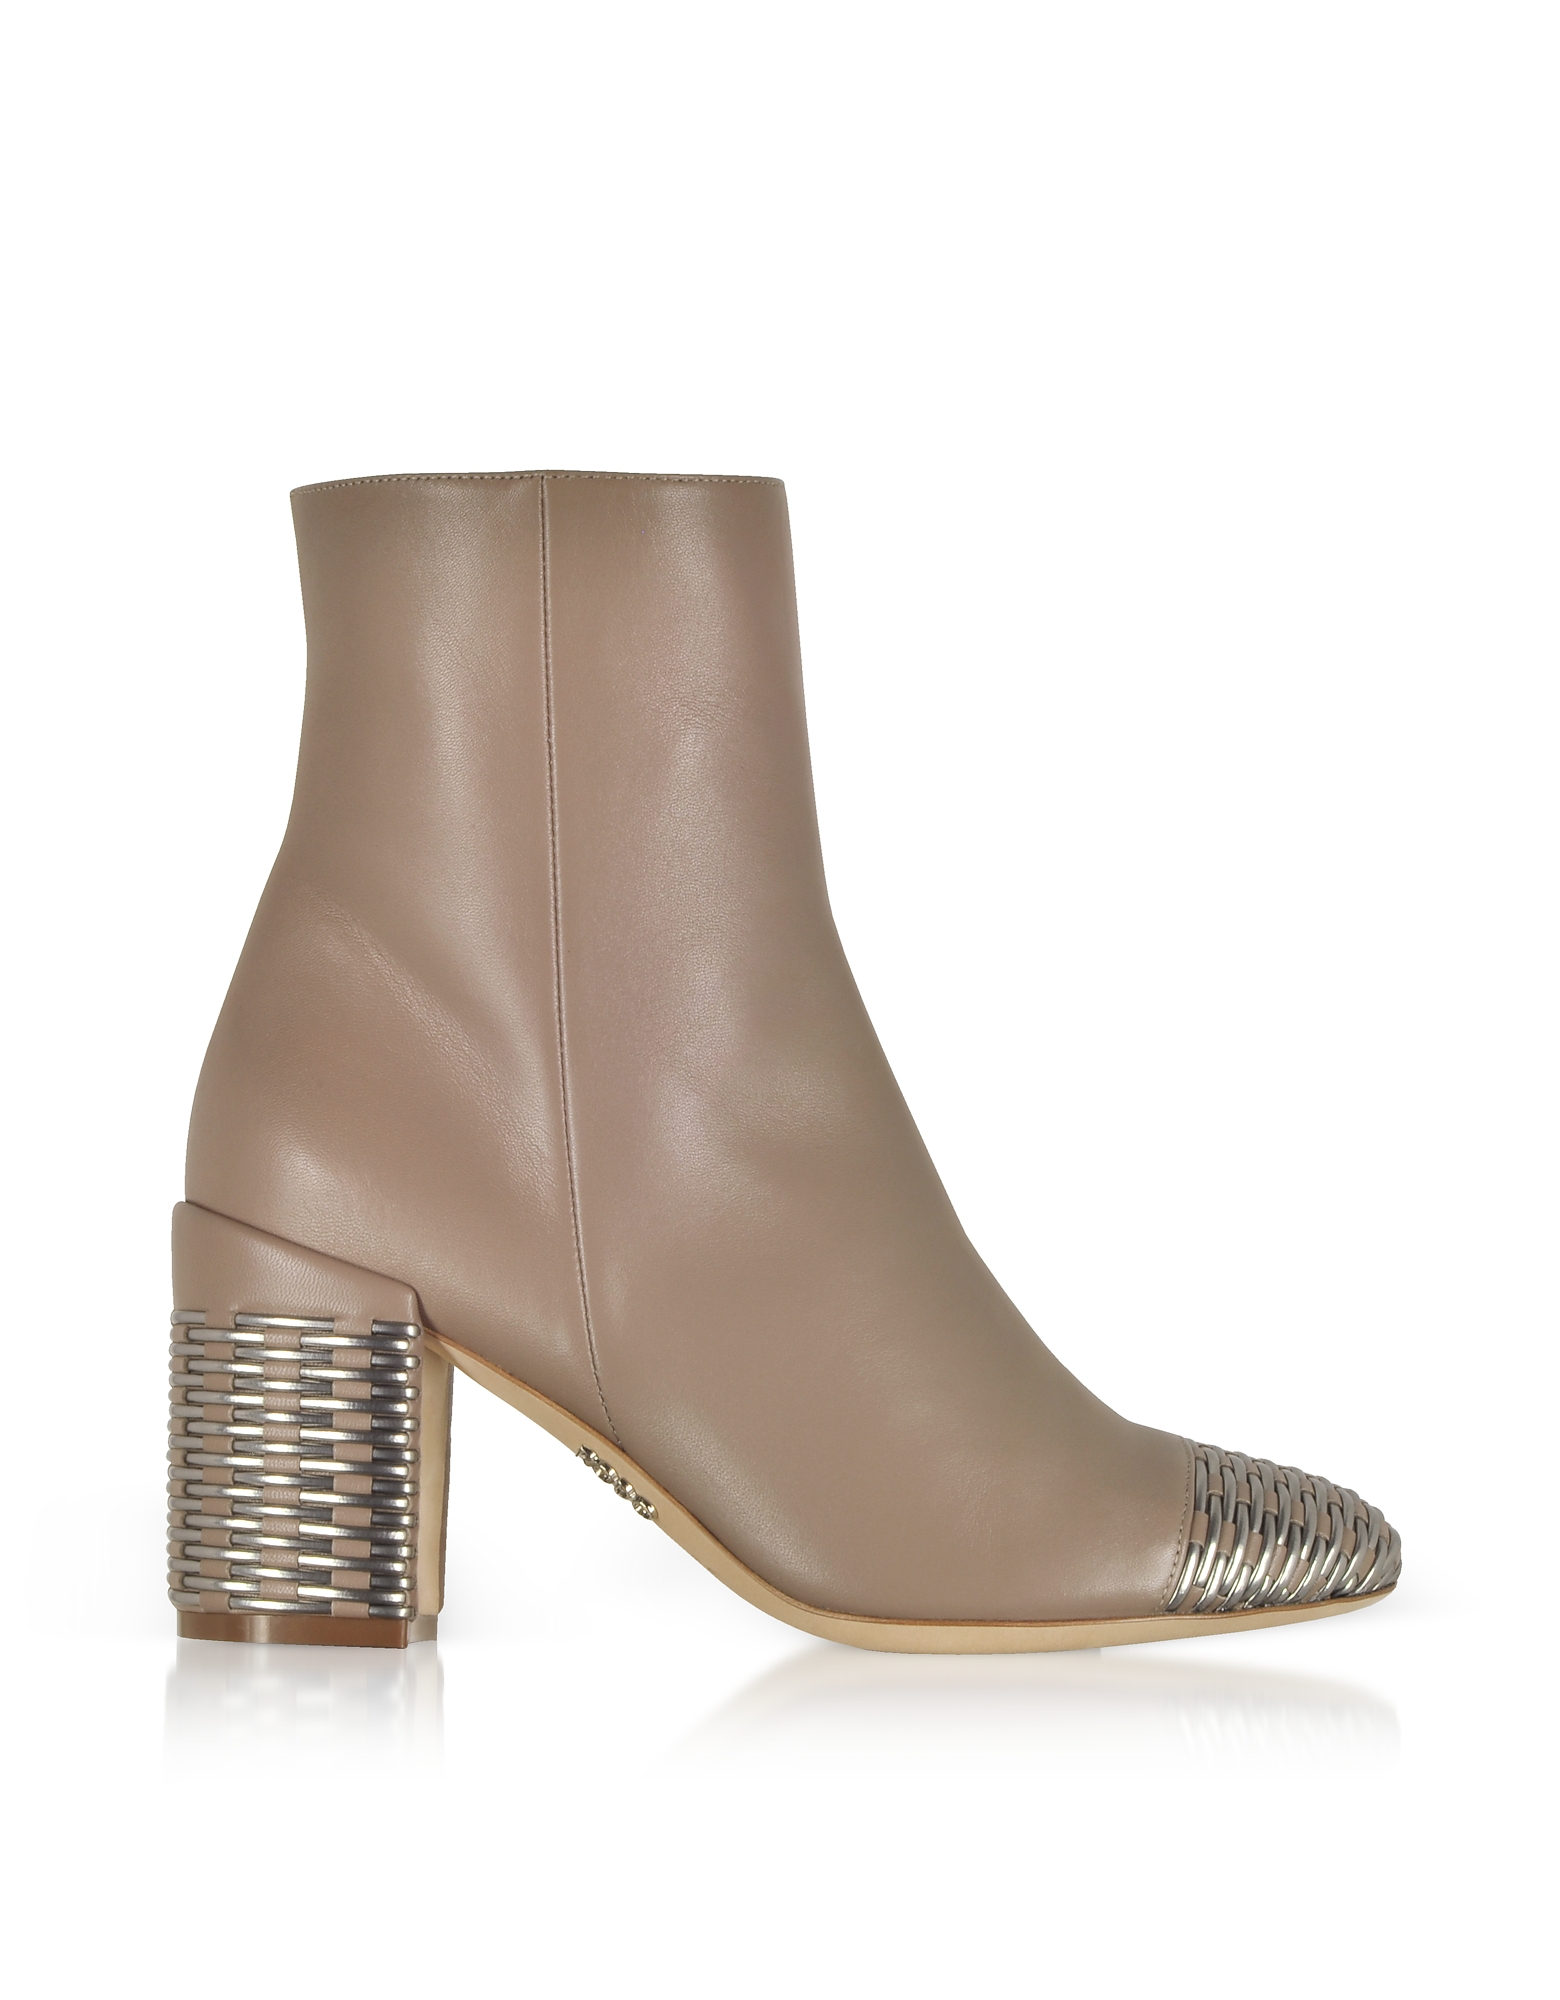 Rodo Designer Shoes, Taupe and Silver Woven Leather Heel Booties